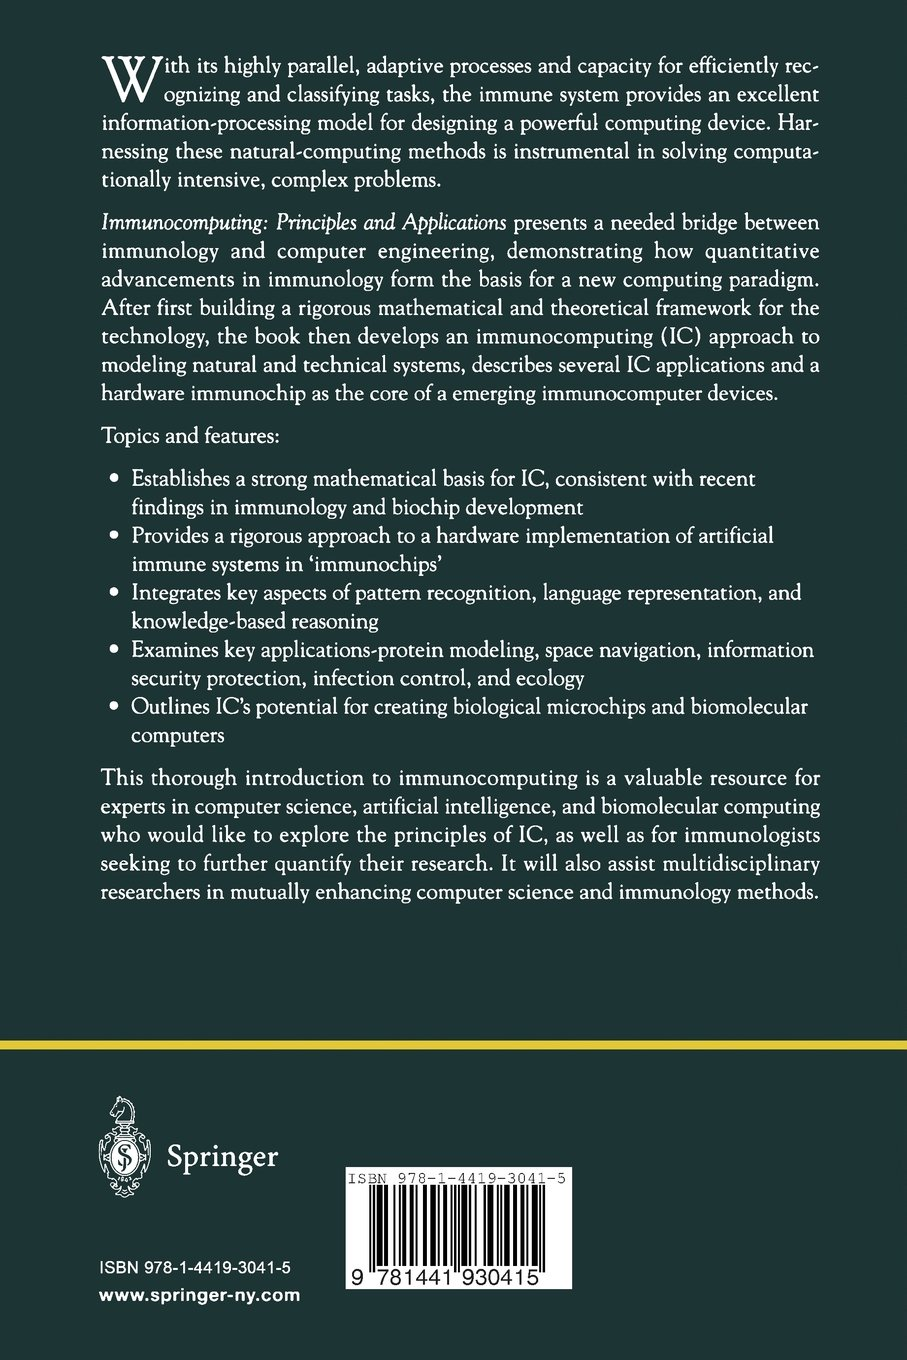 Get Immunocomputing: Principles and Applications PDF - Lefty's Fry